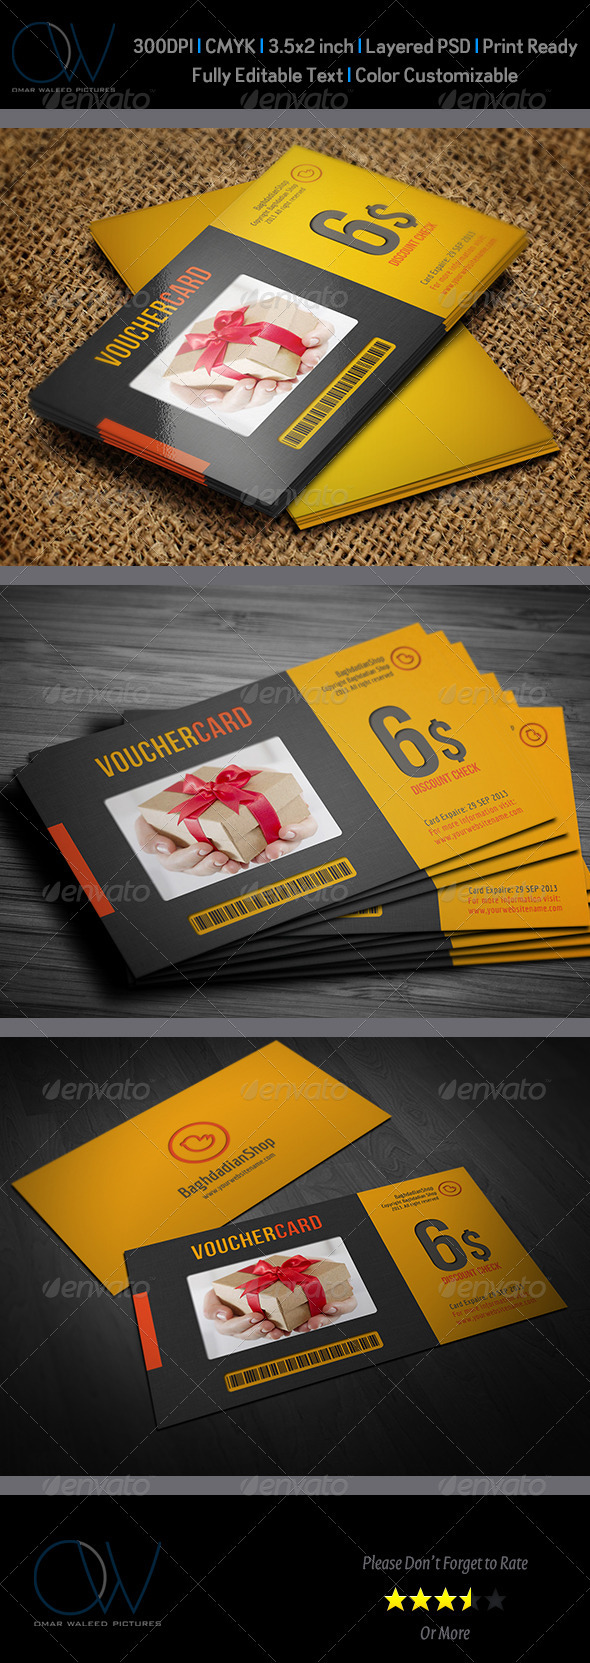 GraphicRiver Gift Voucher Card Vol 2 3691337